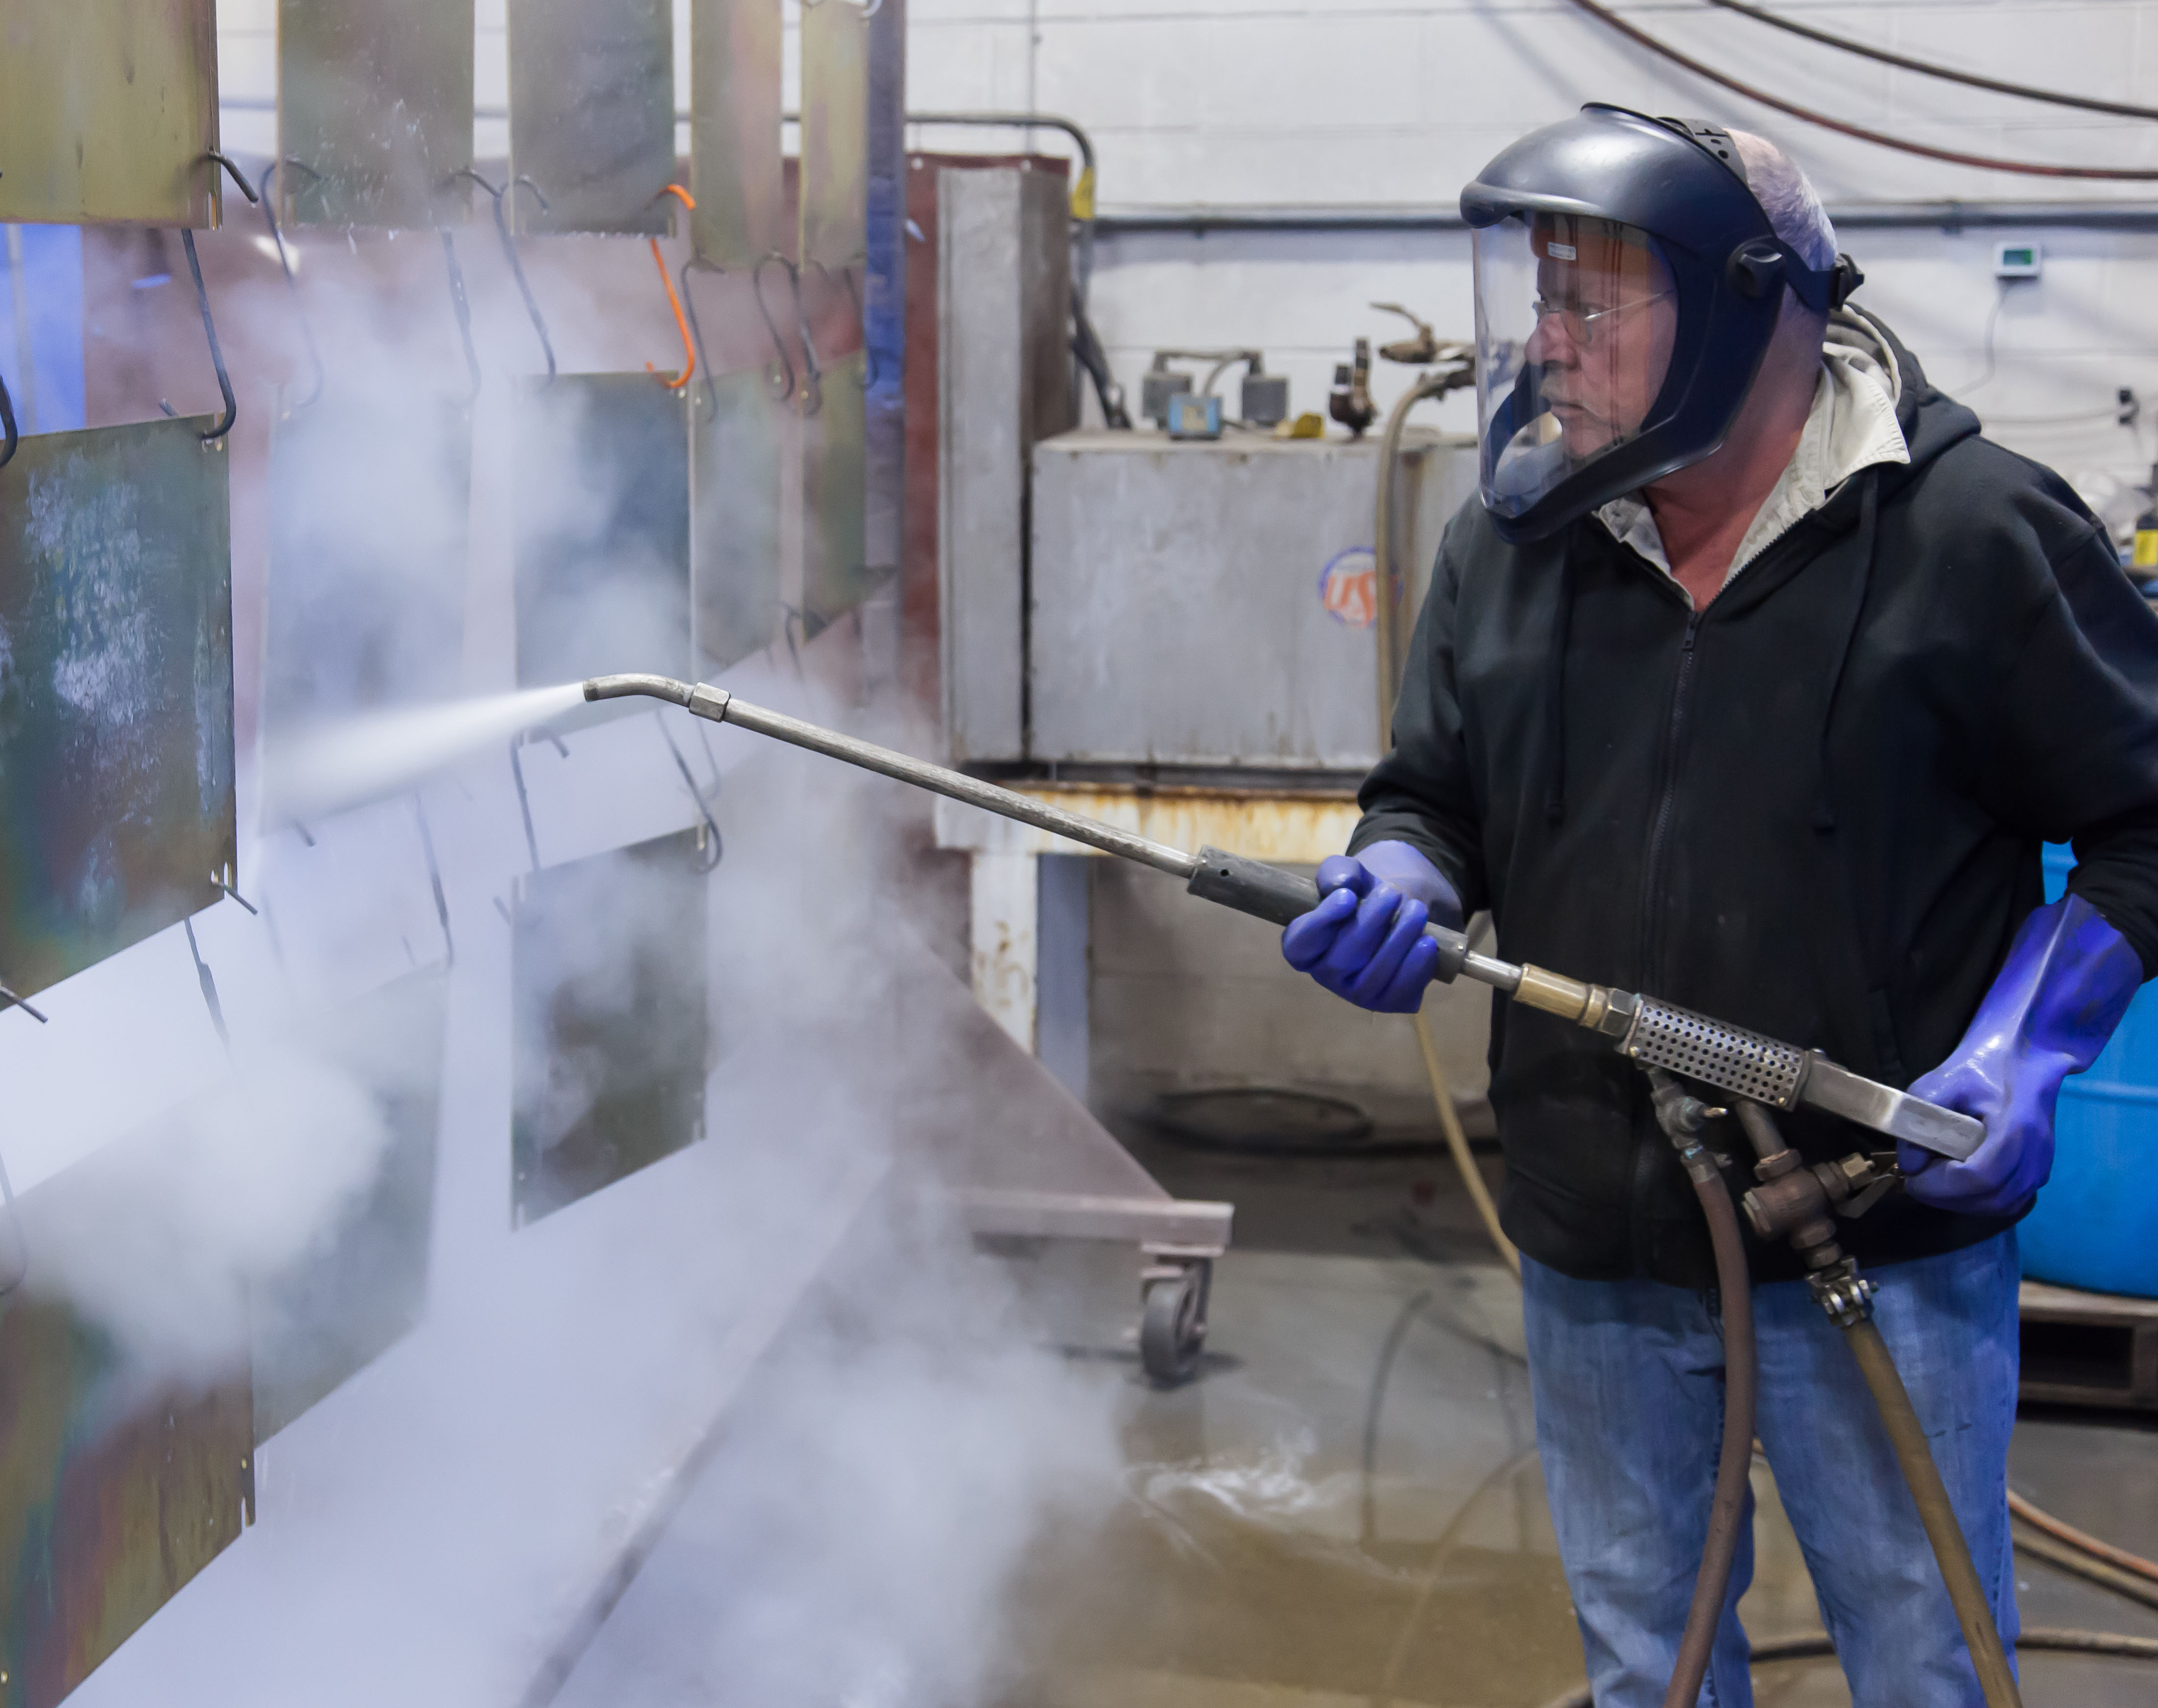 VeriForm uses 300 degree steam cleaning for parts prior to painting resulting in finished paint that is equivalent or better than sandblasting.